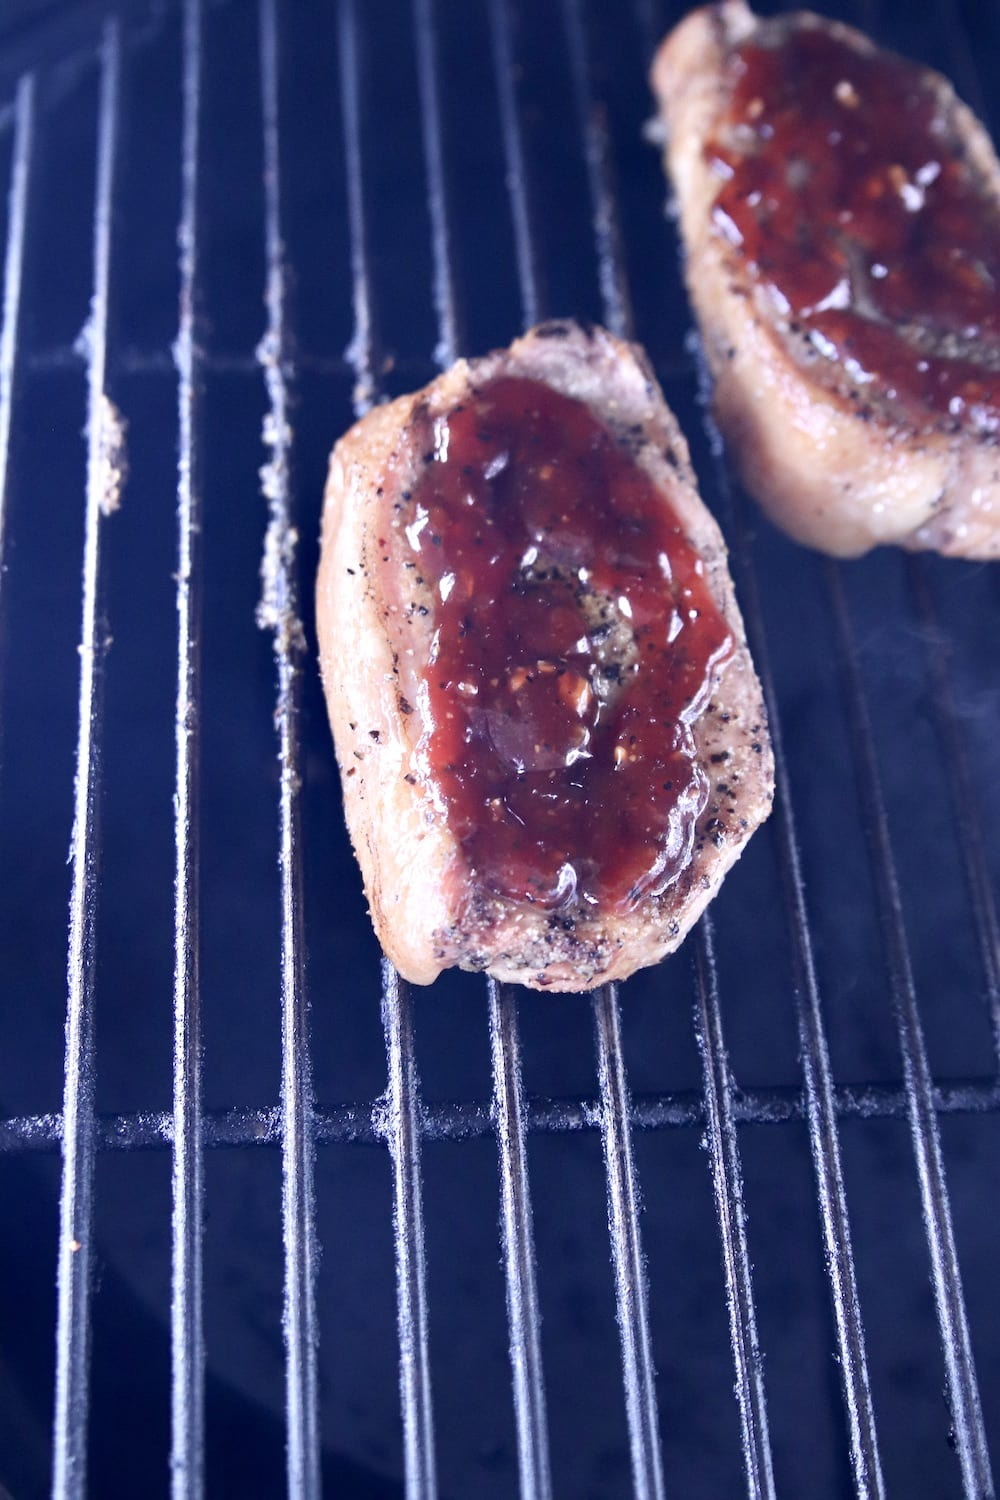 Grilling Pork Chops with bbq sauce